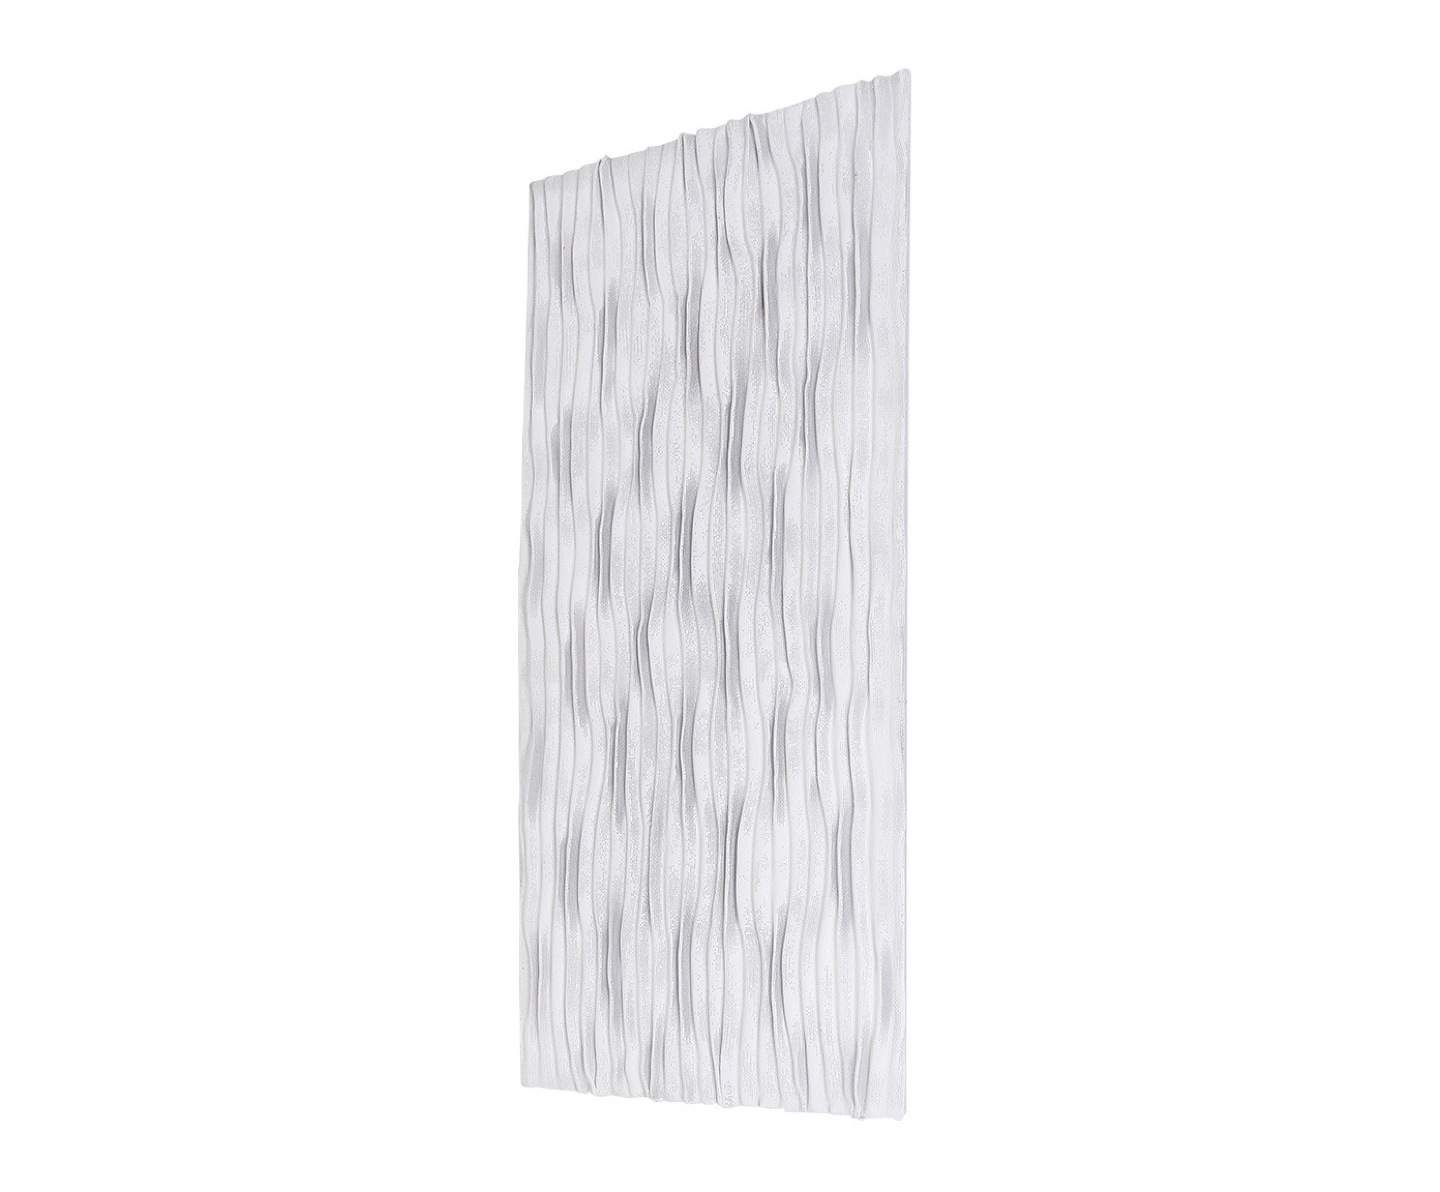 Planum Plafón/Wall Lamp rectangular 96x47cm LED